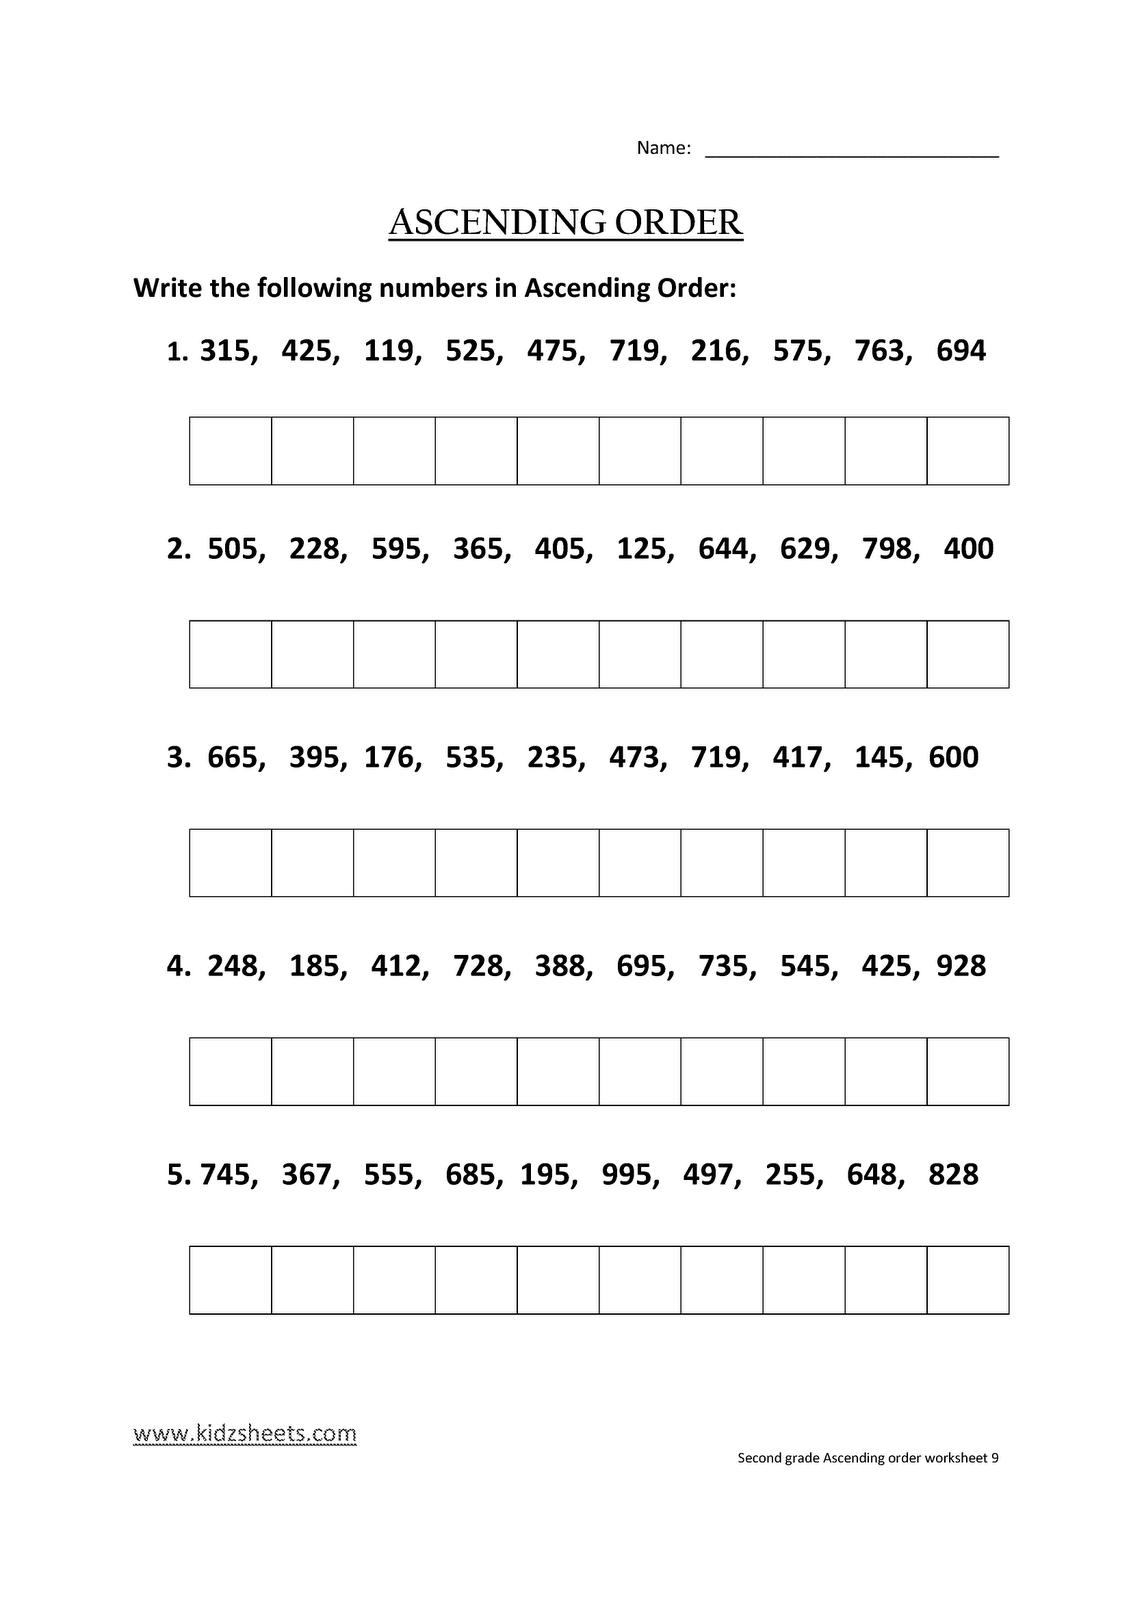 Kidz Worksheets Second Grade Ascending Order Worksheet9